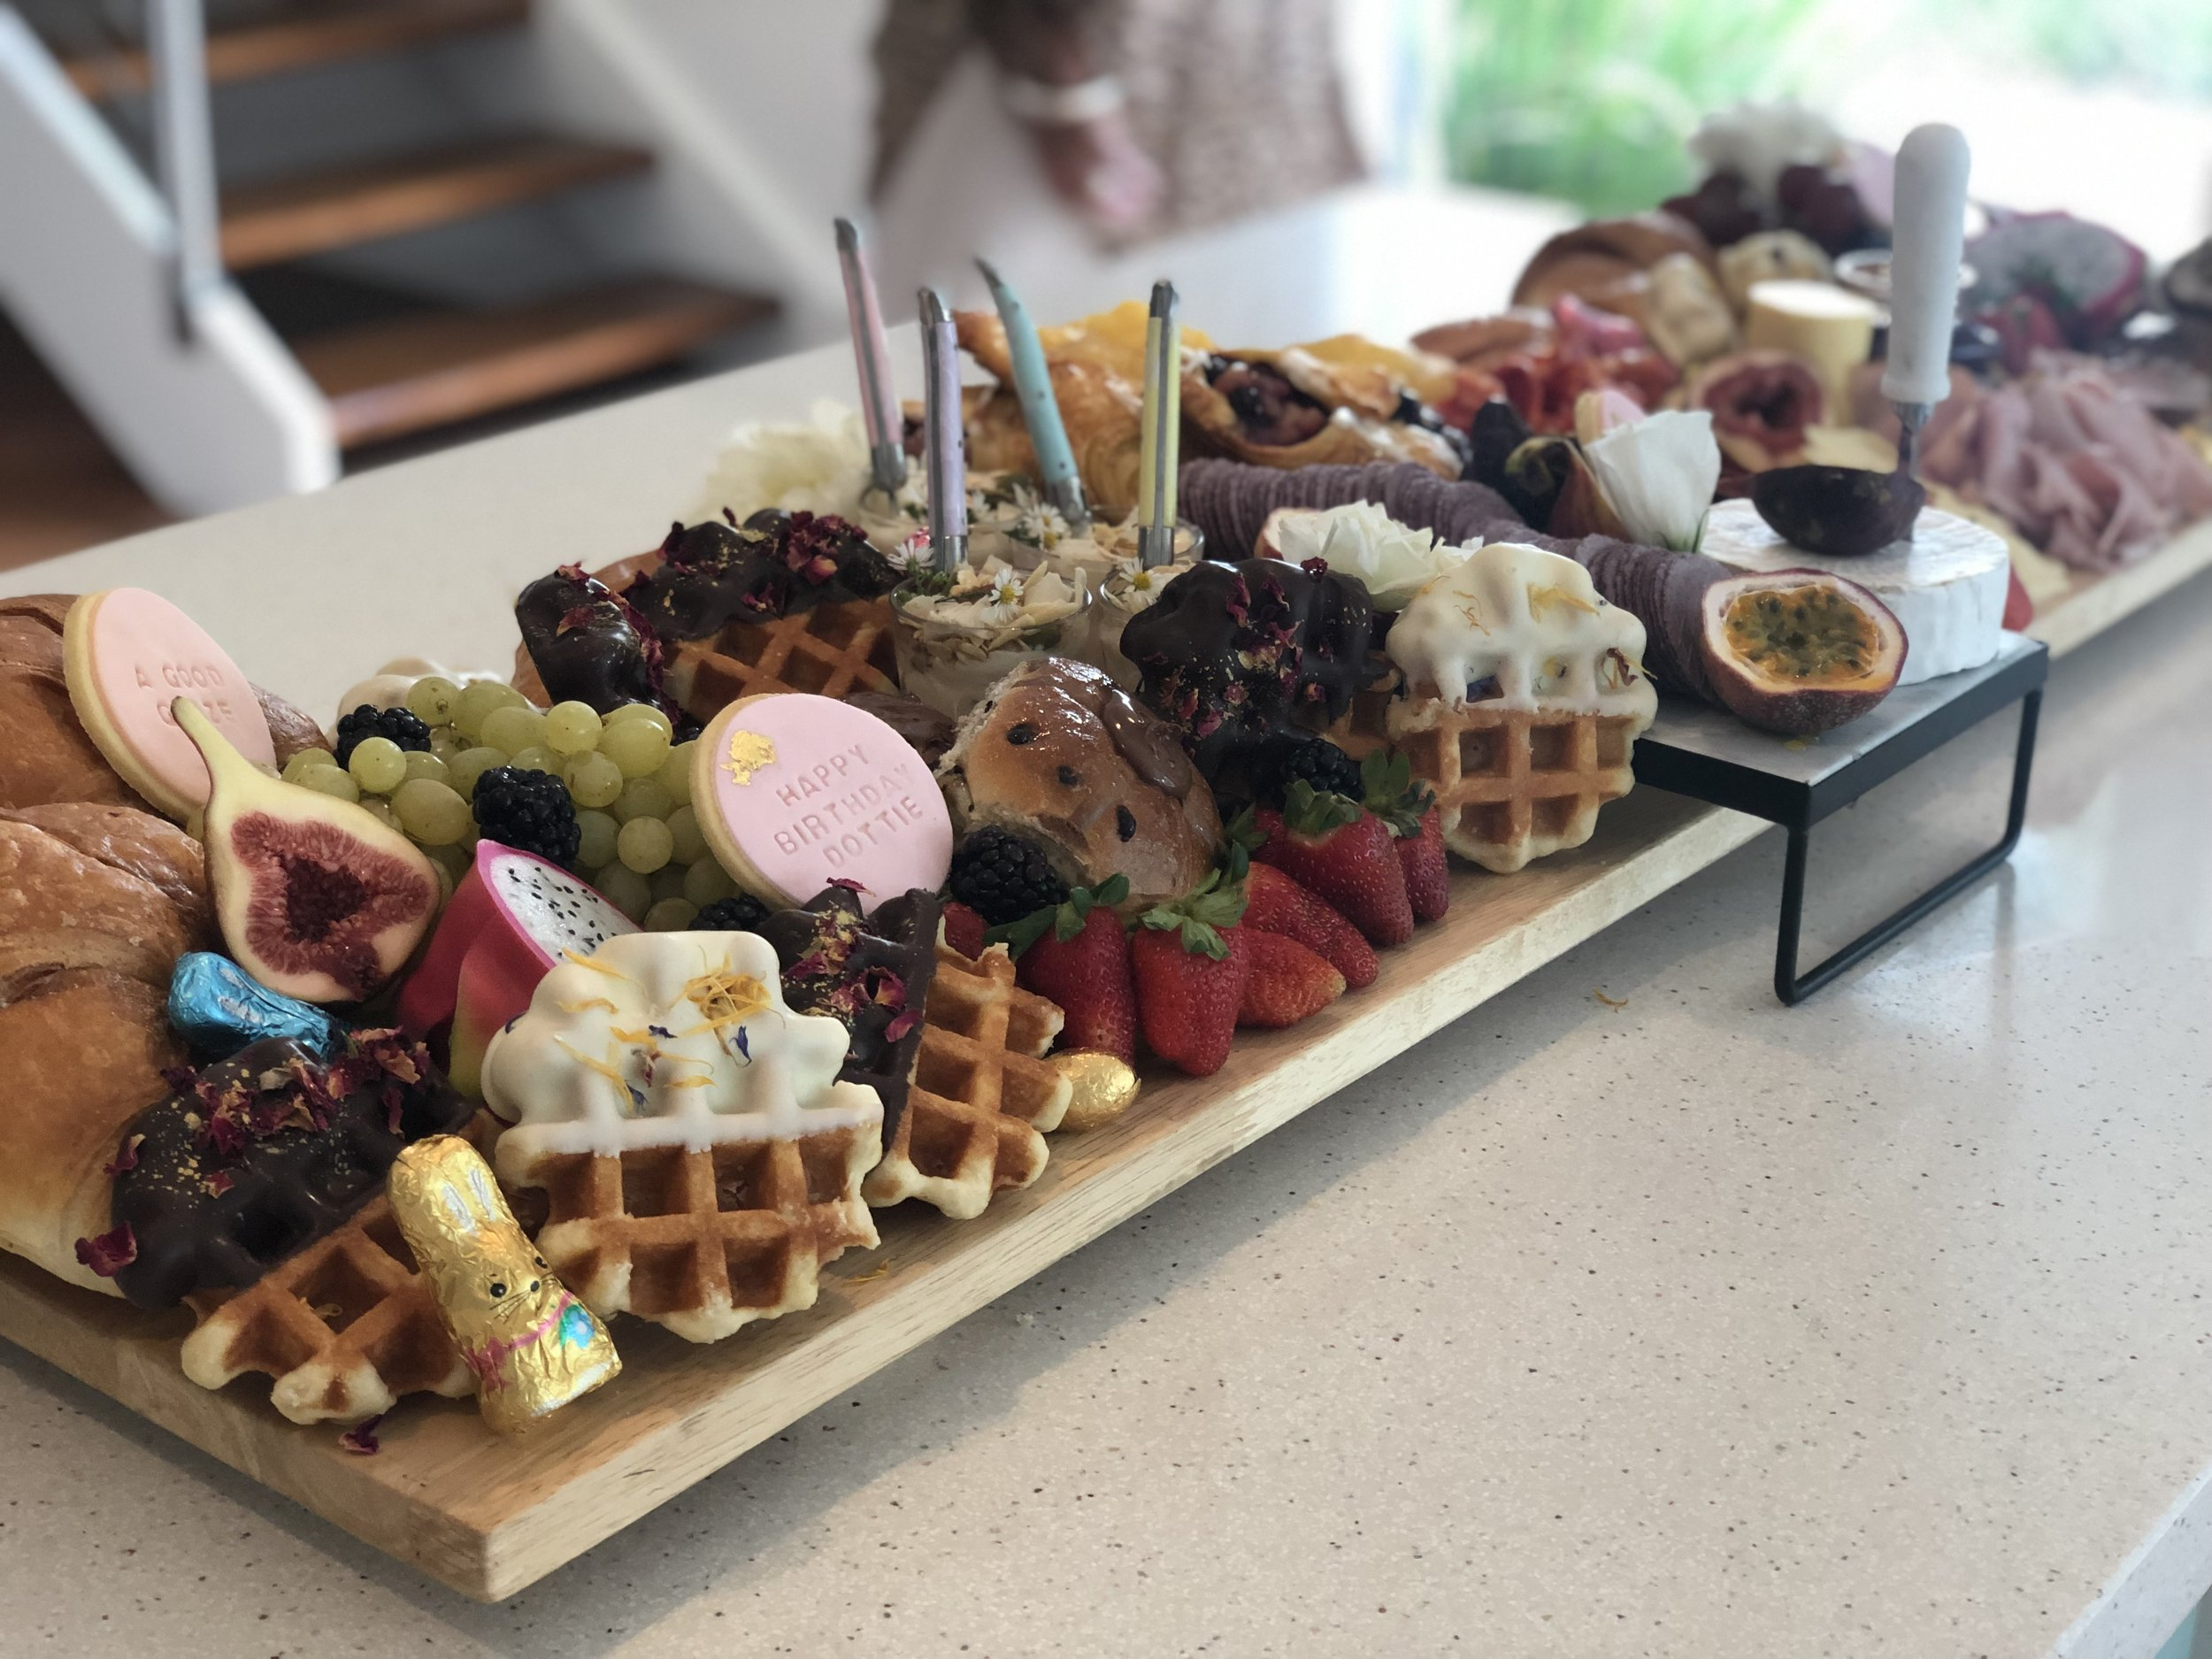 + Brunch for Days + - Croissants, homemade chocolate dipped waffles, danish, yoghurt pots, jams, butter, brie, Jarlsberg cheese, triple smoked ham, fresh fruit & the graze*1.2m X 30cmFeeds approximately 20-25 adults$380